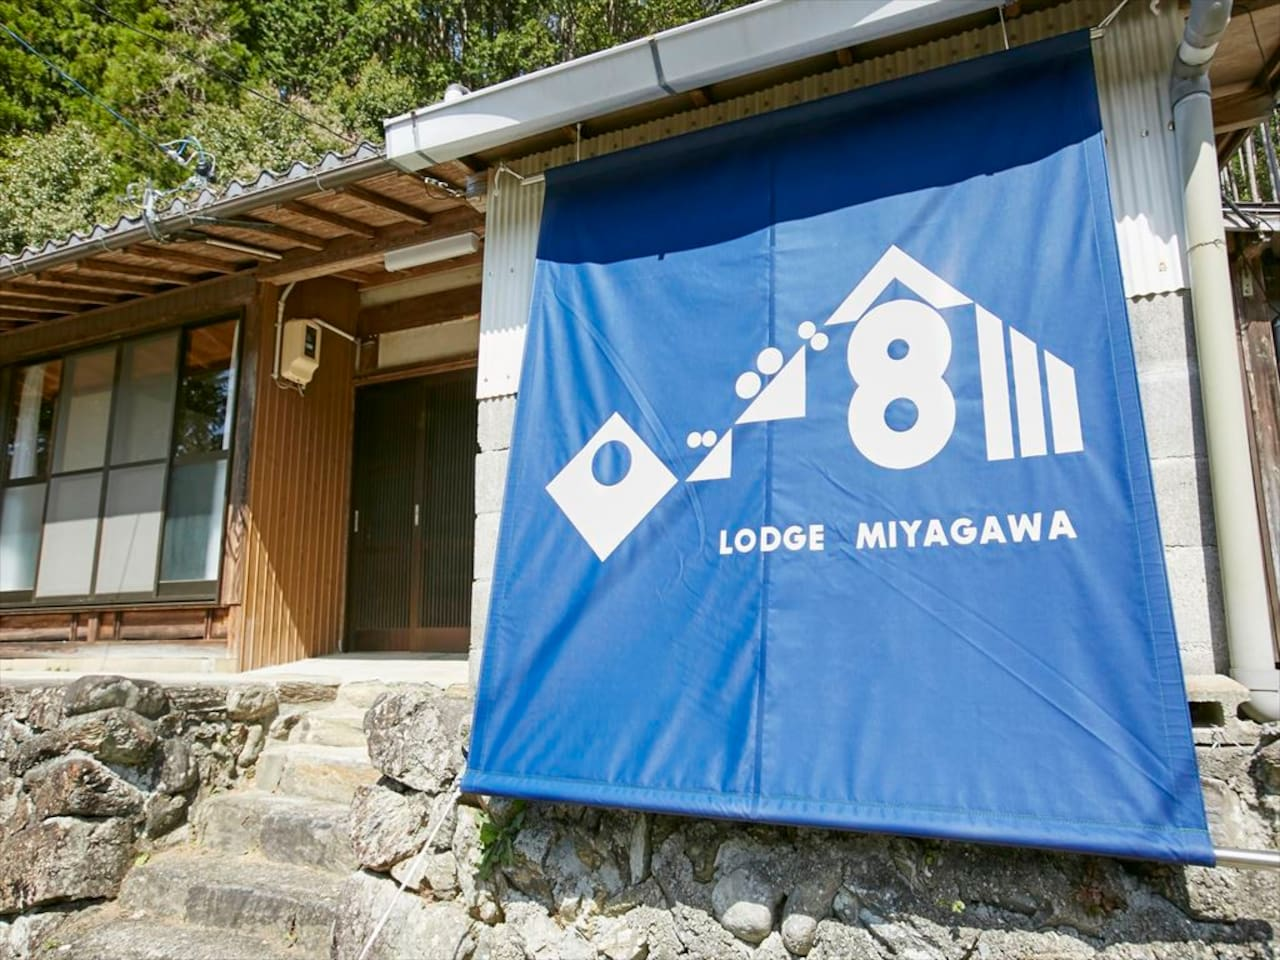 The Japanese house stands in a village, upstream on the Miyagawa (Miya River) which flows from Odaigahara to Ise.